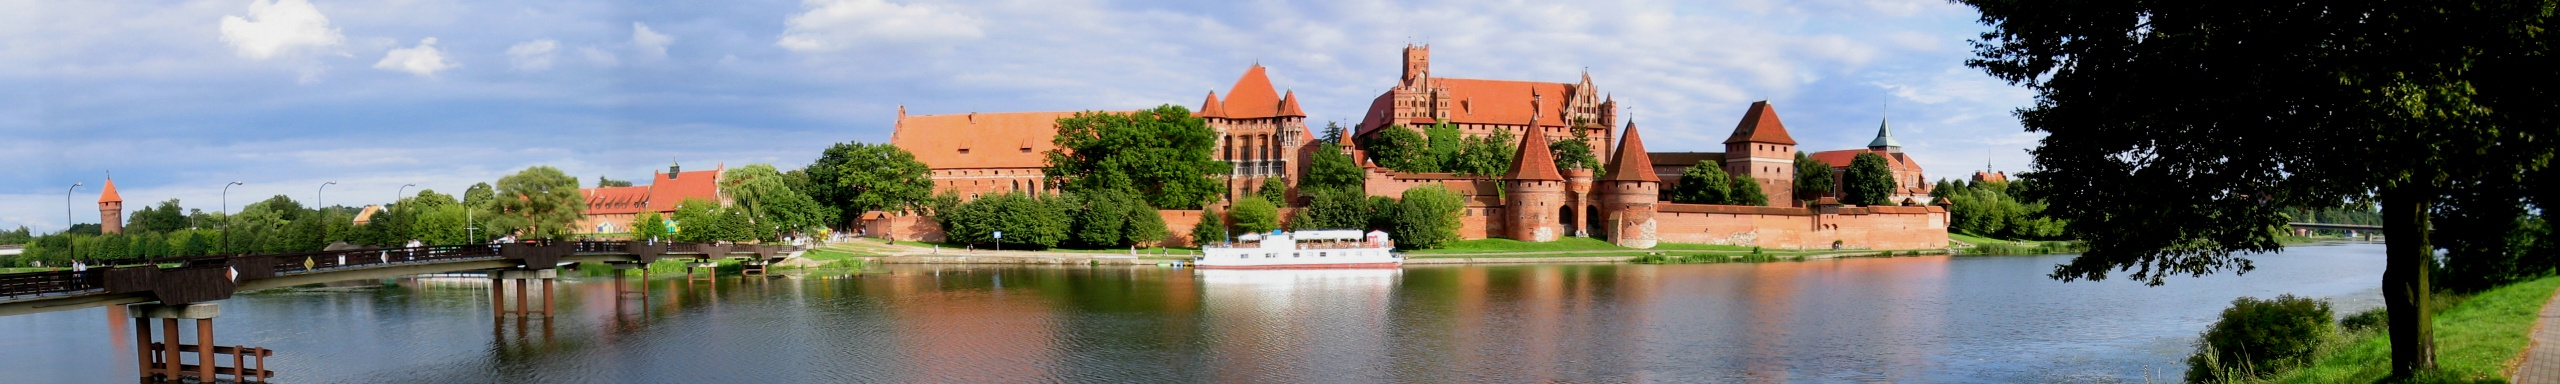 The Castle of the Teutonic Order in Malbork, Poland, is an example of medieval fortresses and built in the typical style of northern German Brick Gothic.